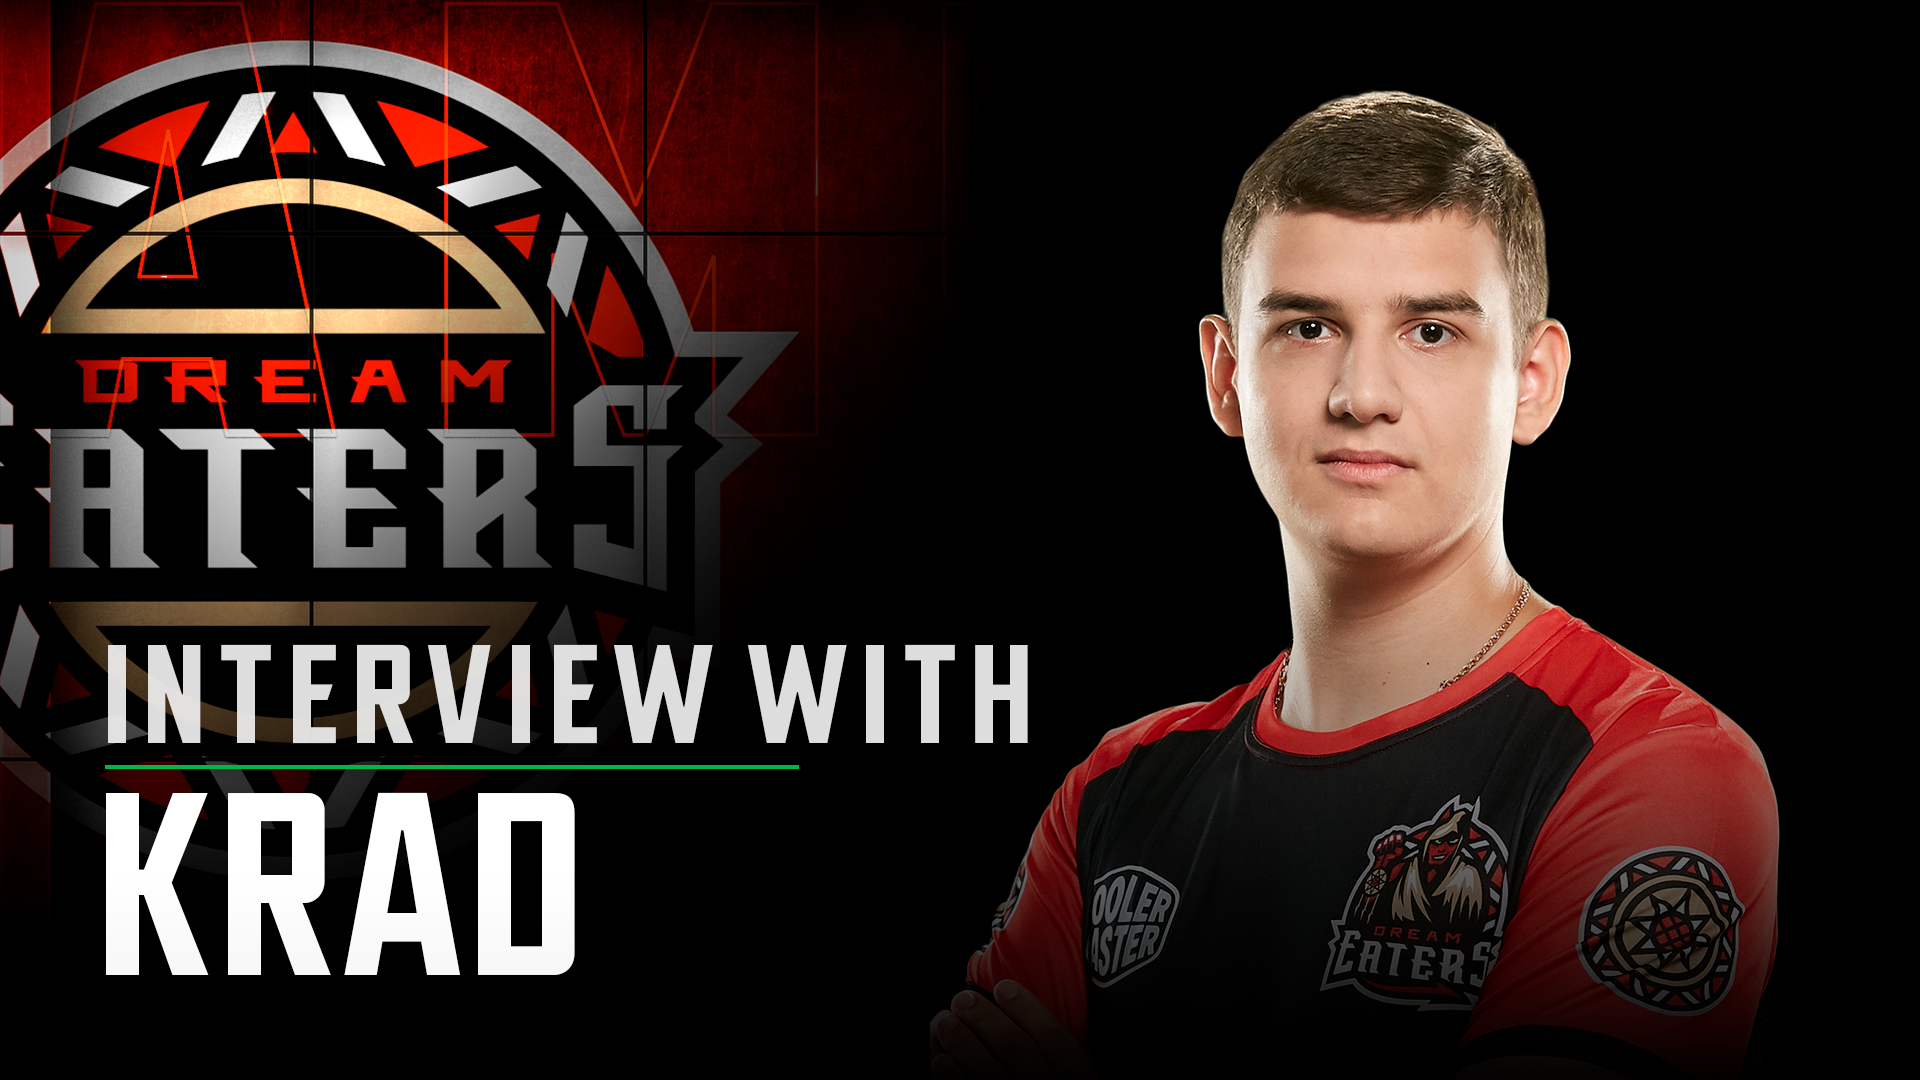 #BerlinMinor2019 | Interview with Krad from DreamEaters